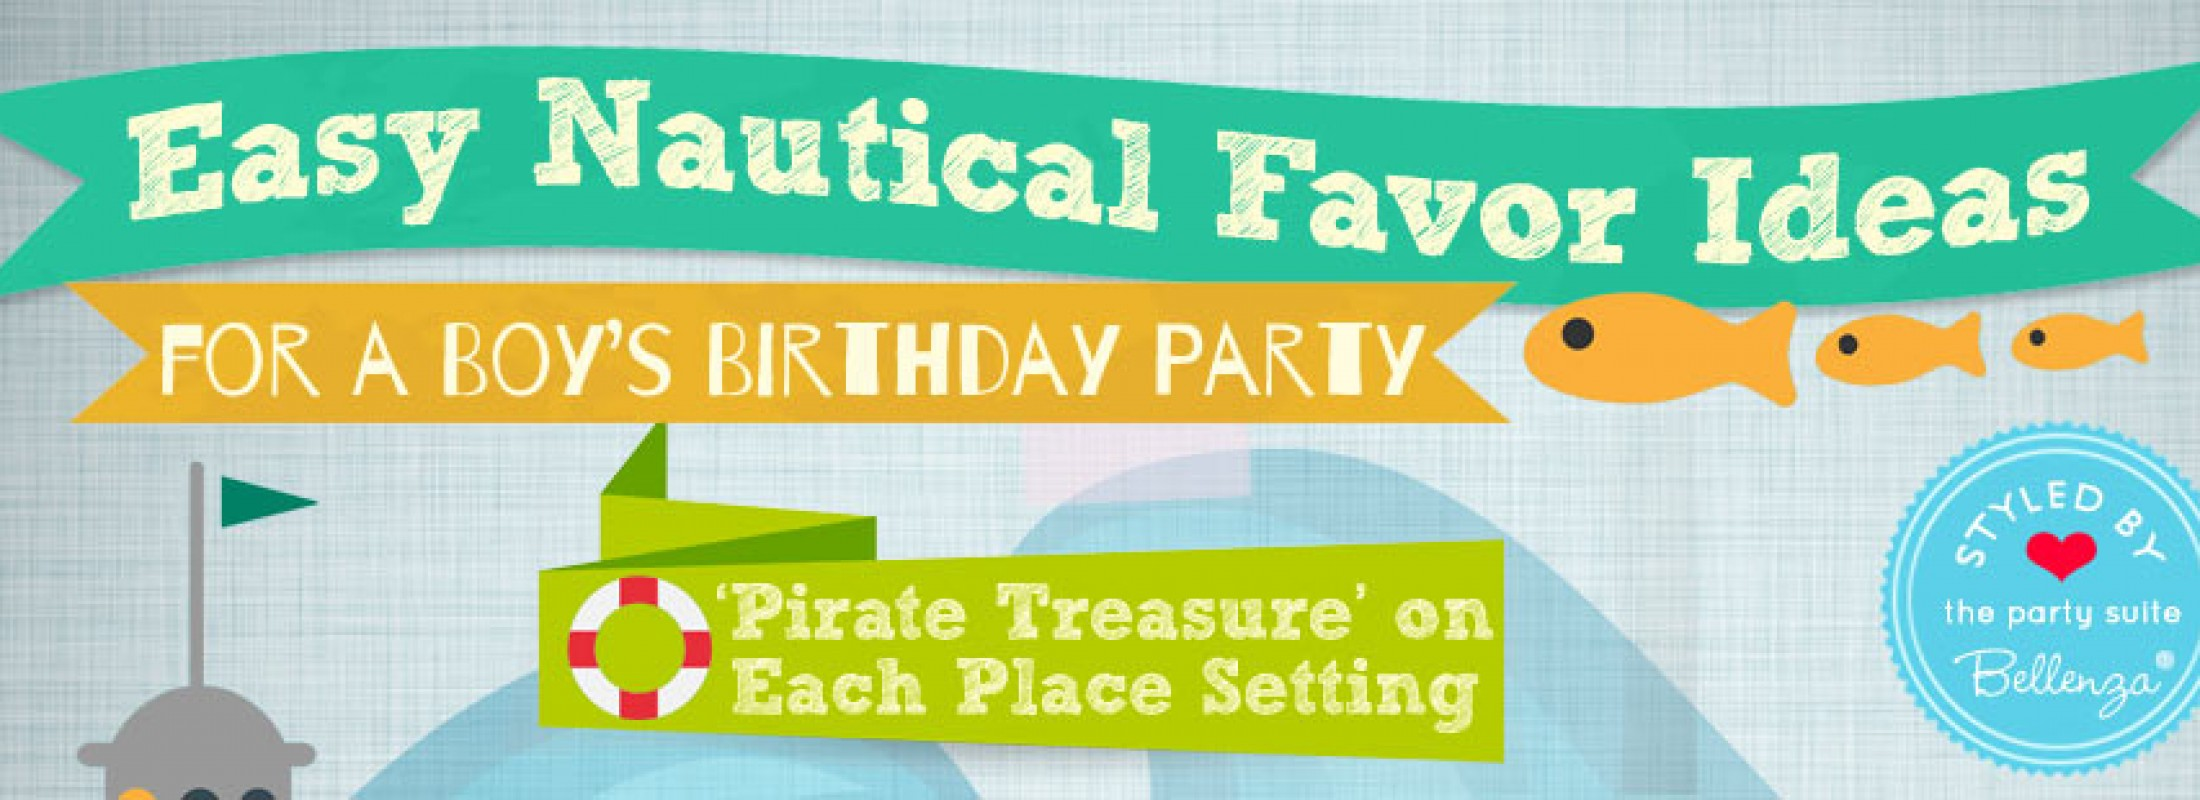 Easy Nautical Favor Ideas for a Boy's Birthday Party!